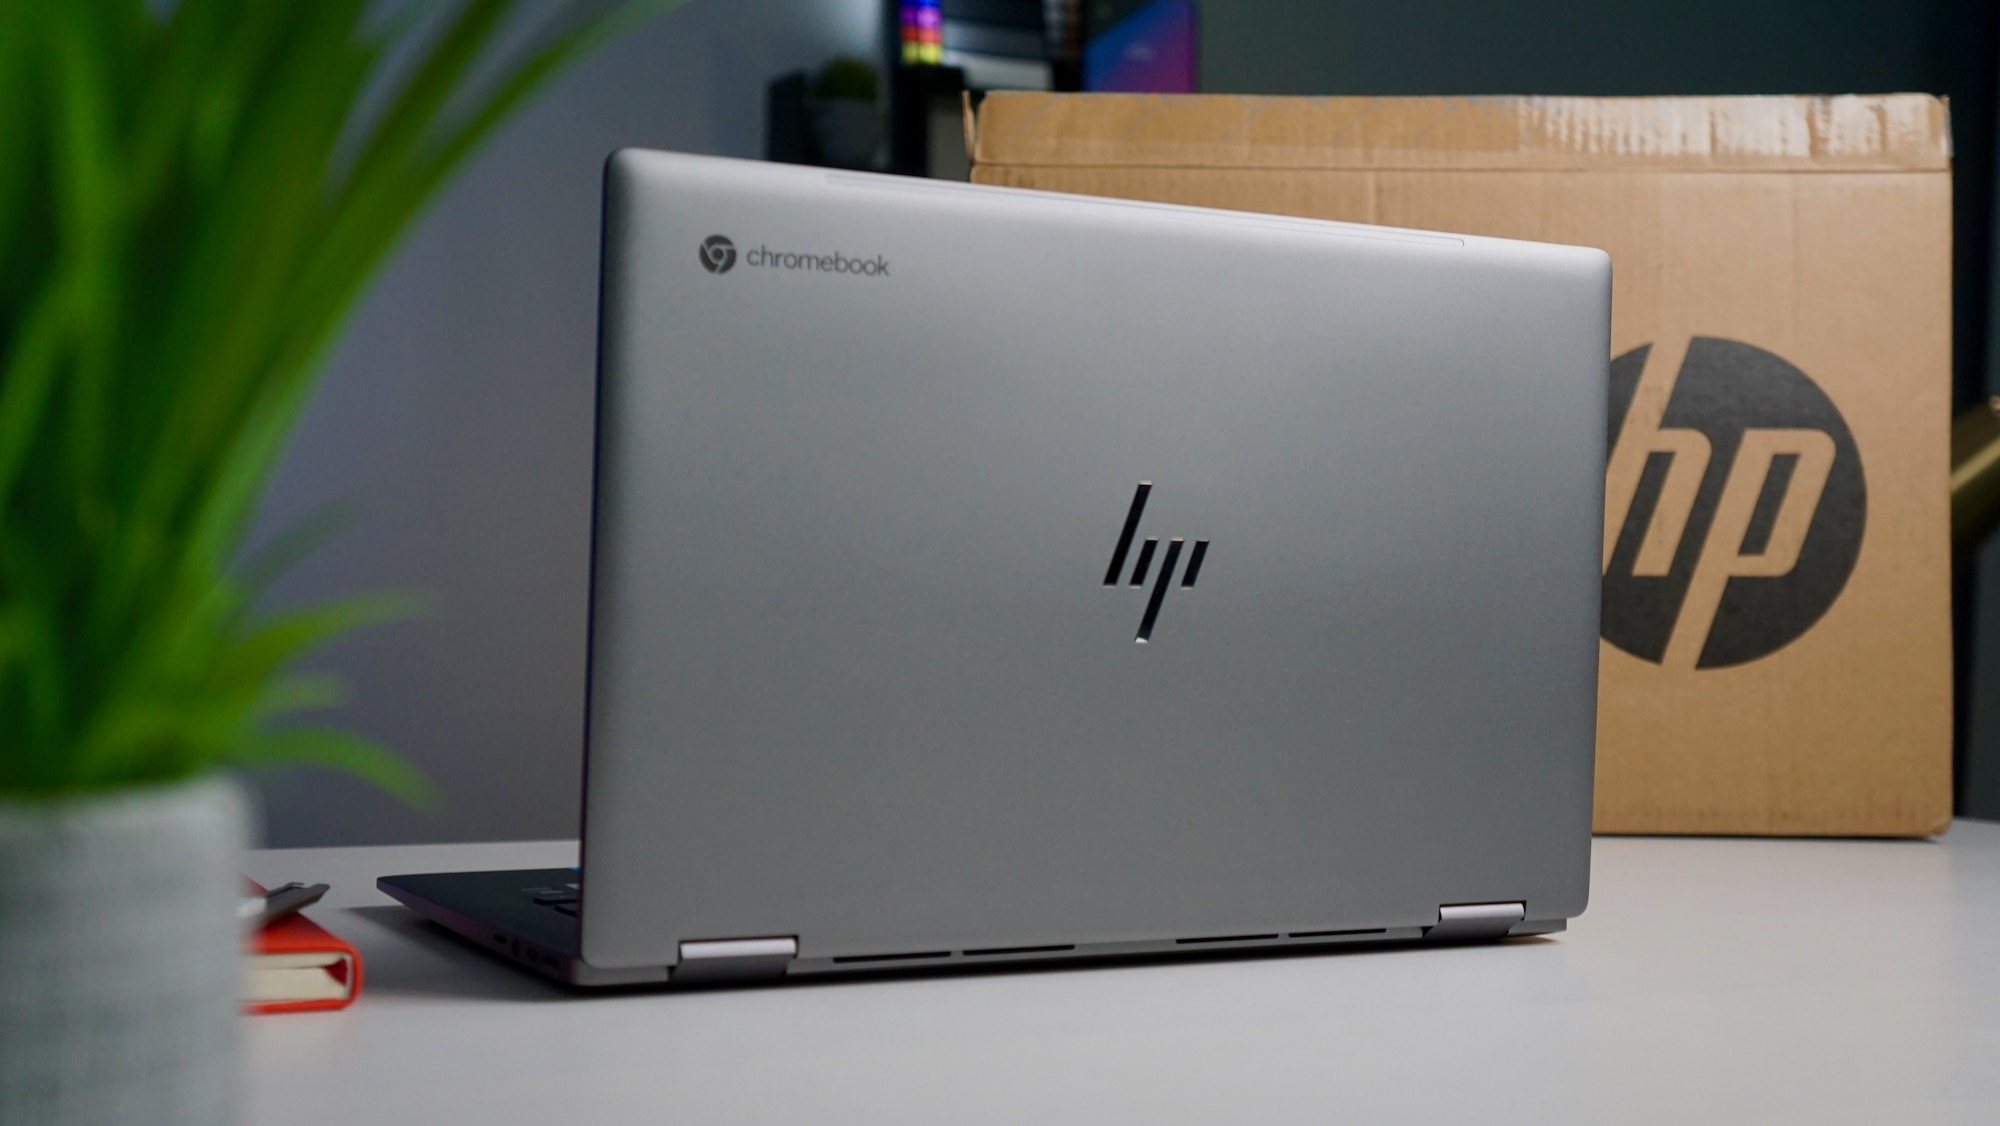 HP Chromebook x360 14c unboxing and hands-on [VIDEO]